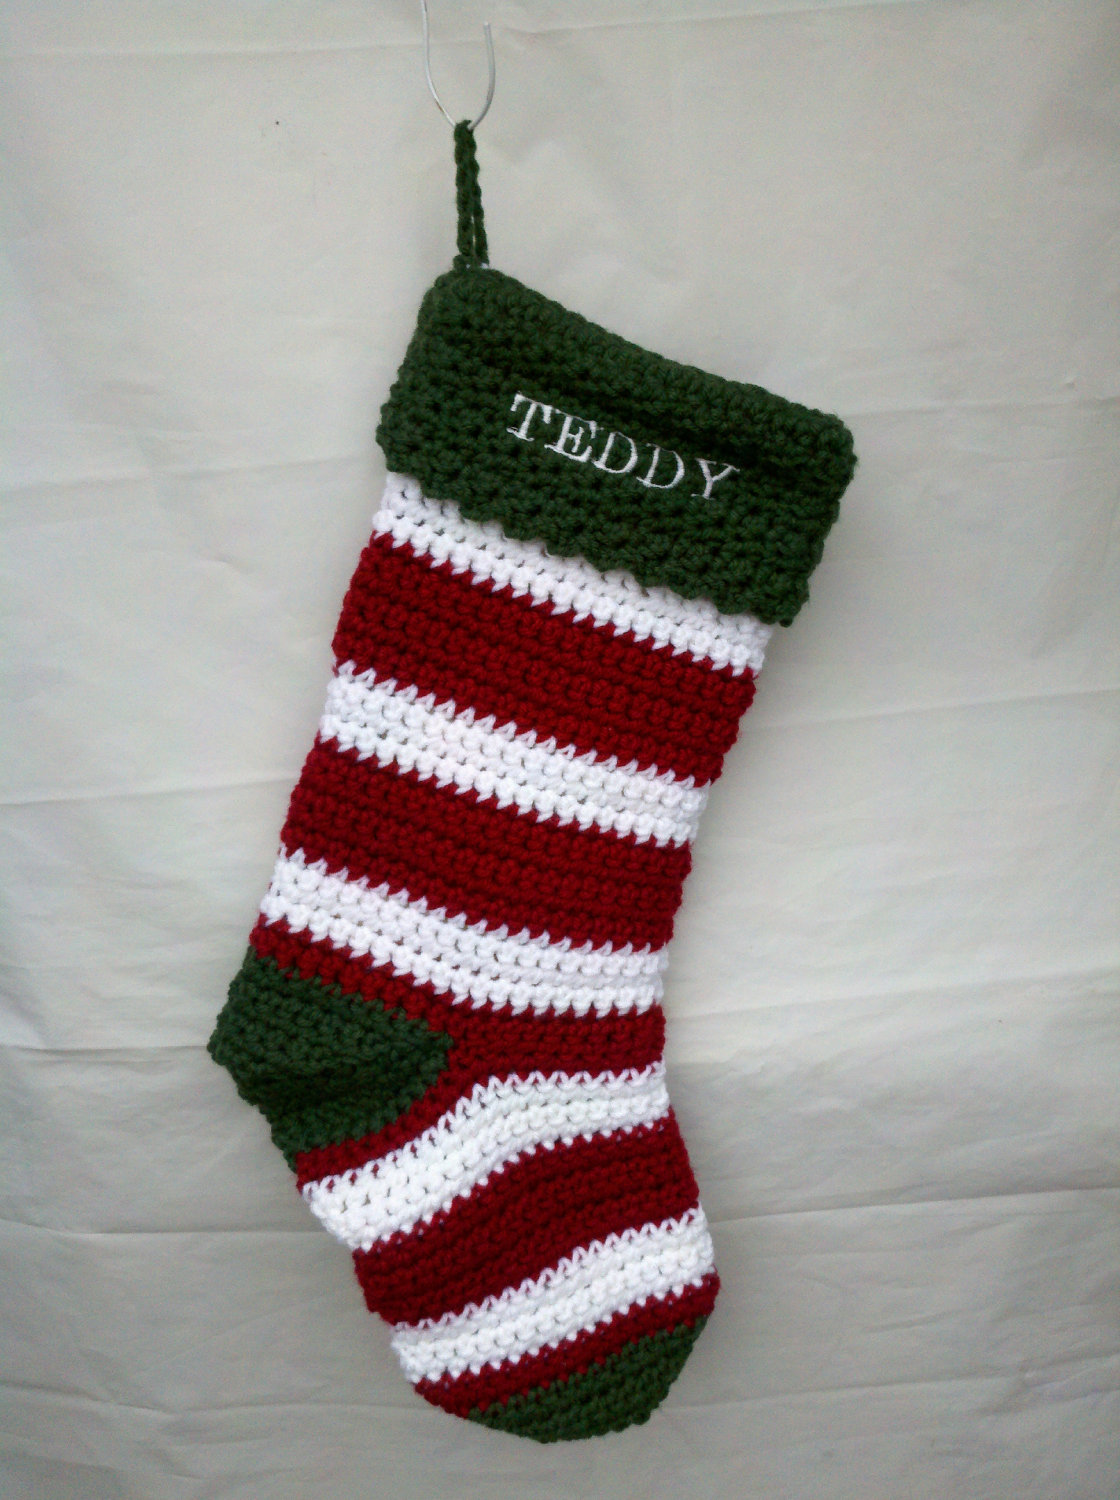 40 All Free Crochet Christmas Stocking Patterns - Patterns Hub